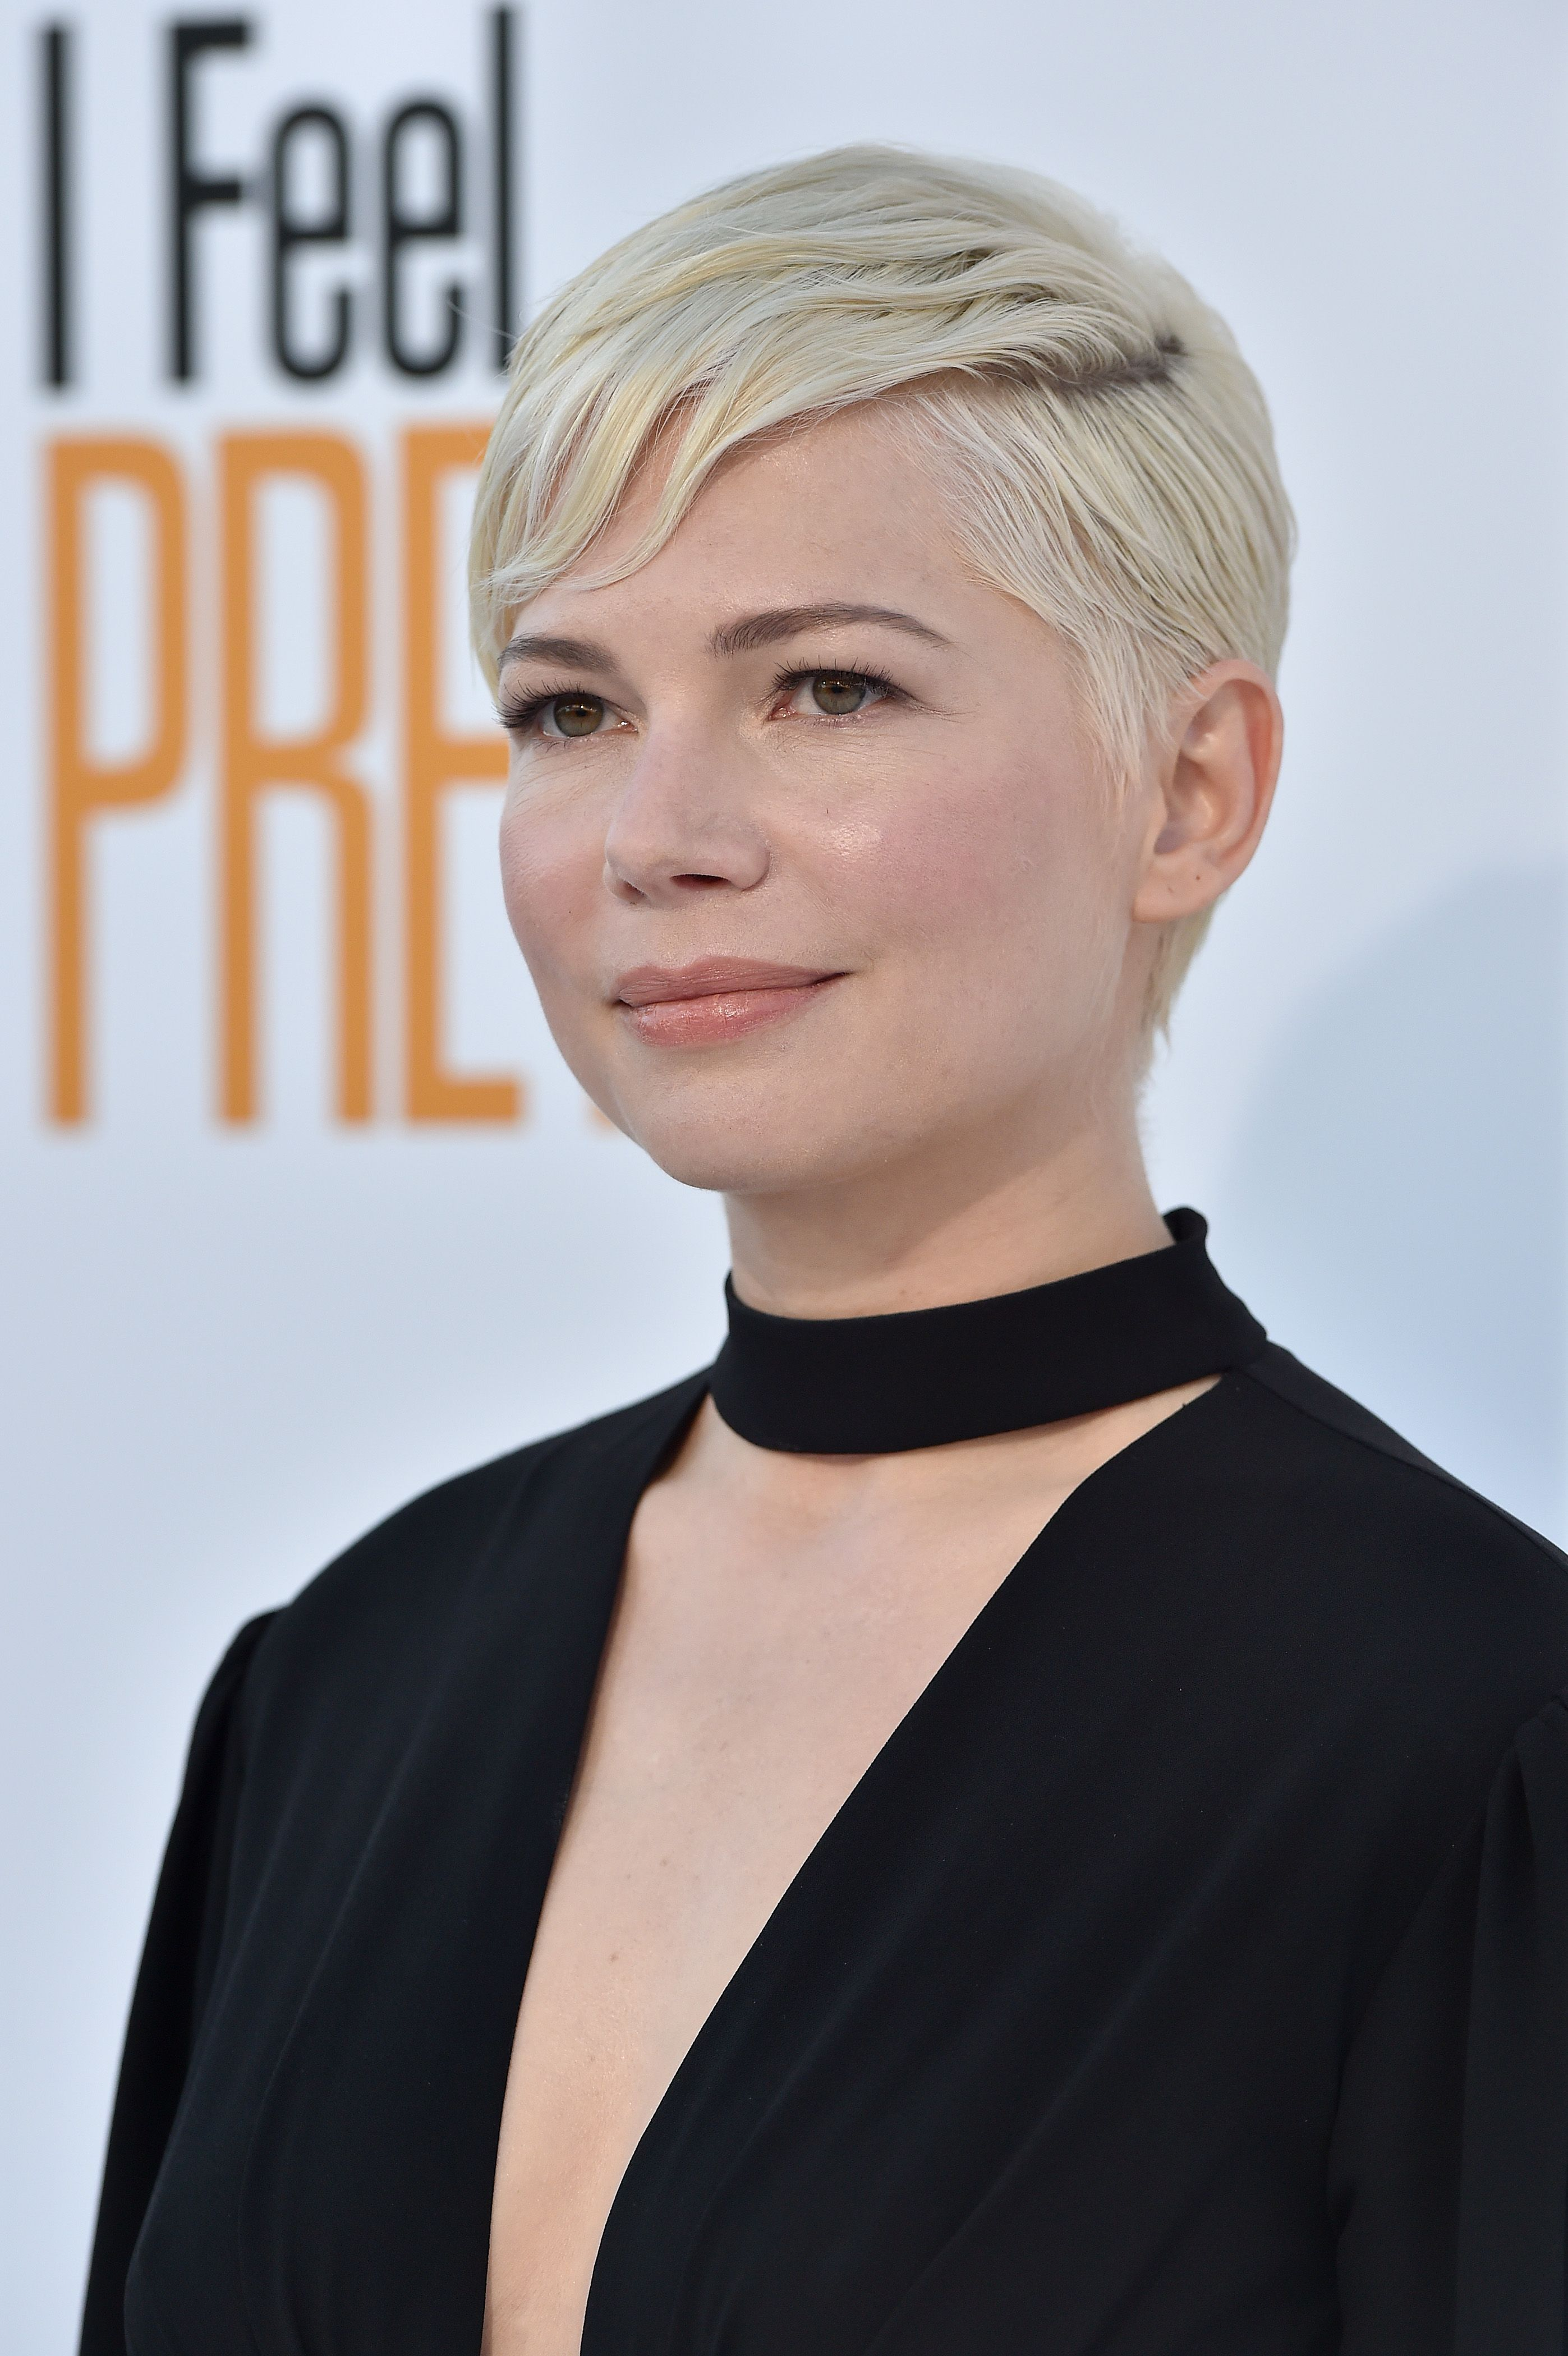 34 Cute Short Hairstyles For Women How To Style Short Haircuts